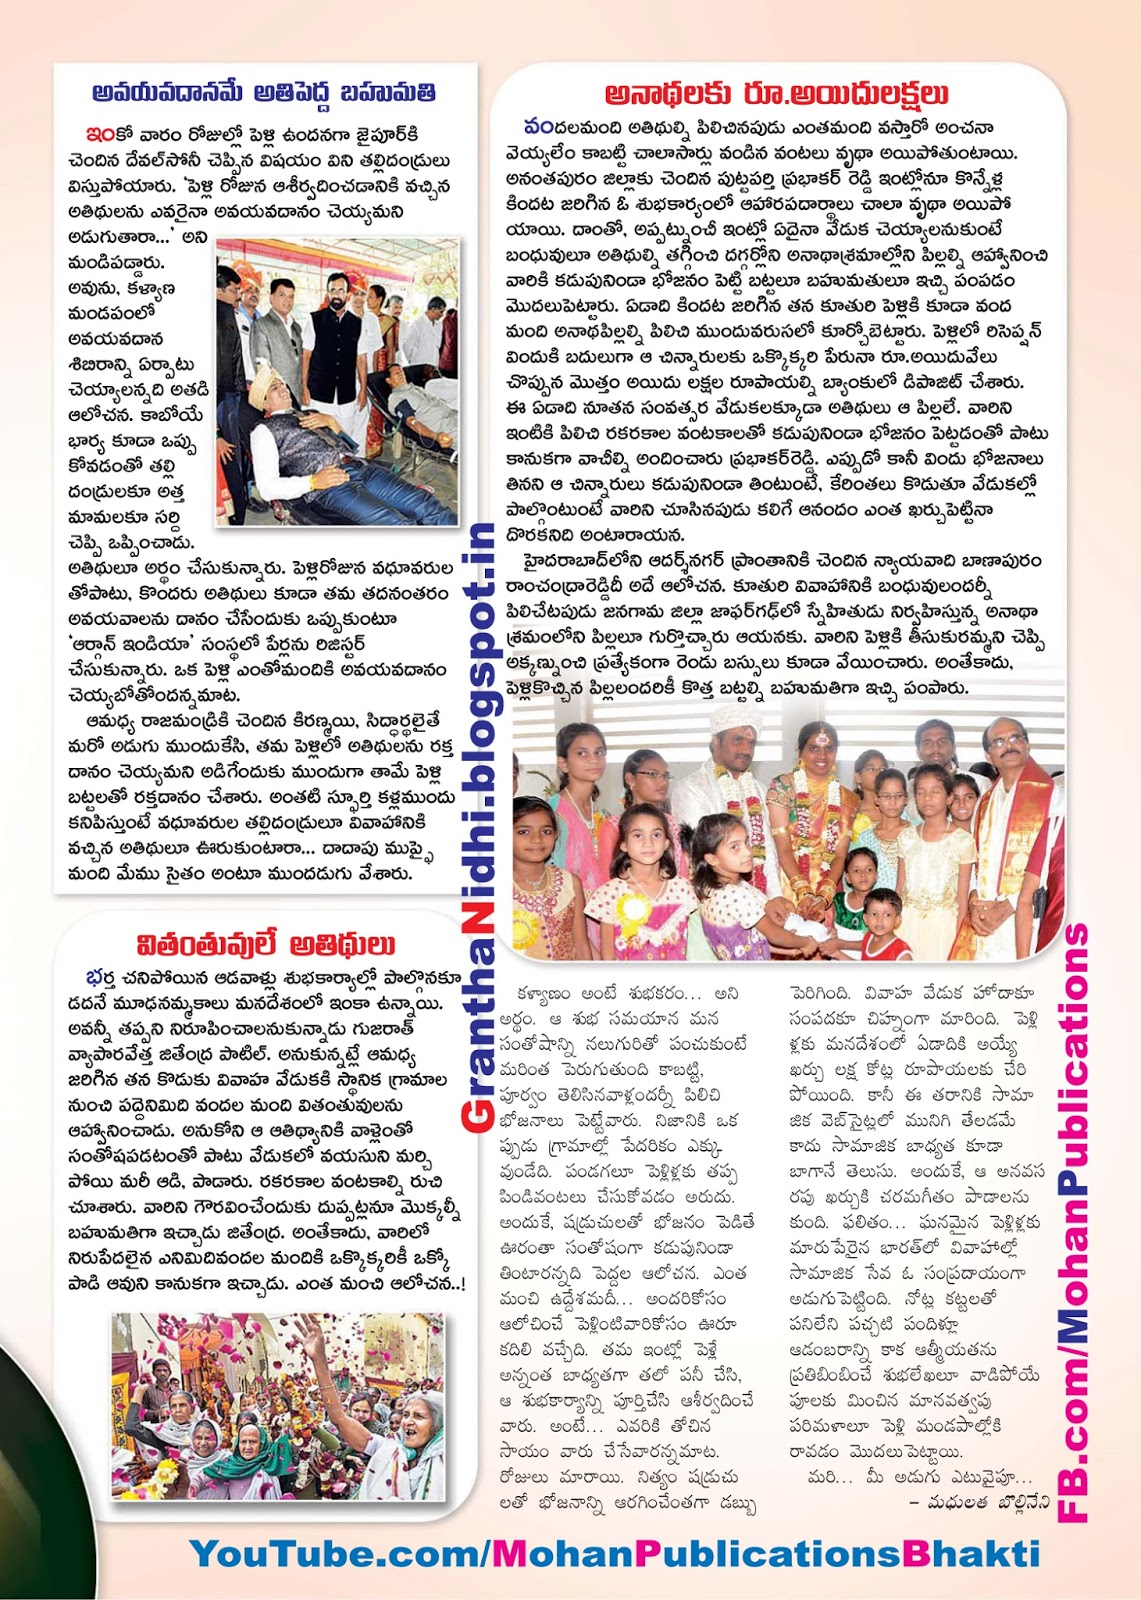 కల్యాణ 'సేవ'! SocialServiceInWeddingOccasions Social Service Voluntary Service Serviceability Helping People Helping Hand to Needpeople Eenadu Epaper Eenadu Sunday Sunday Magazine Bhakthi Pustakalu BhakthiPustakalu Bhakti Pustakalu BhaktiPustakalu